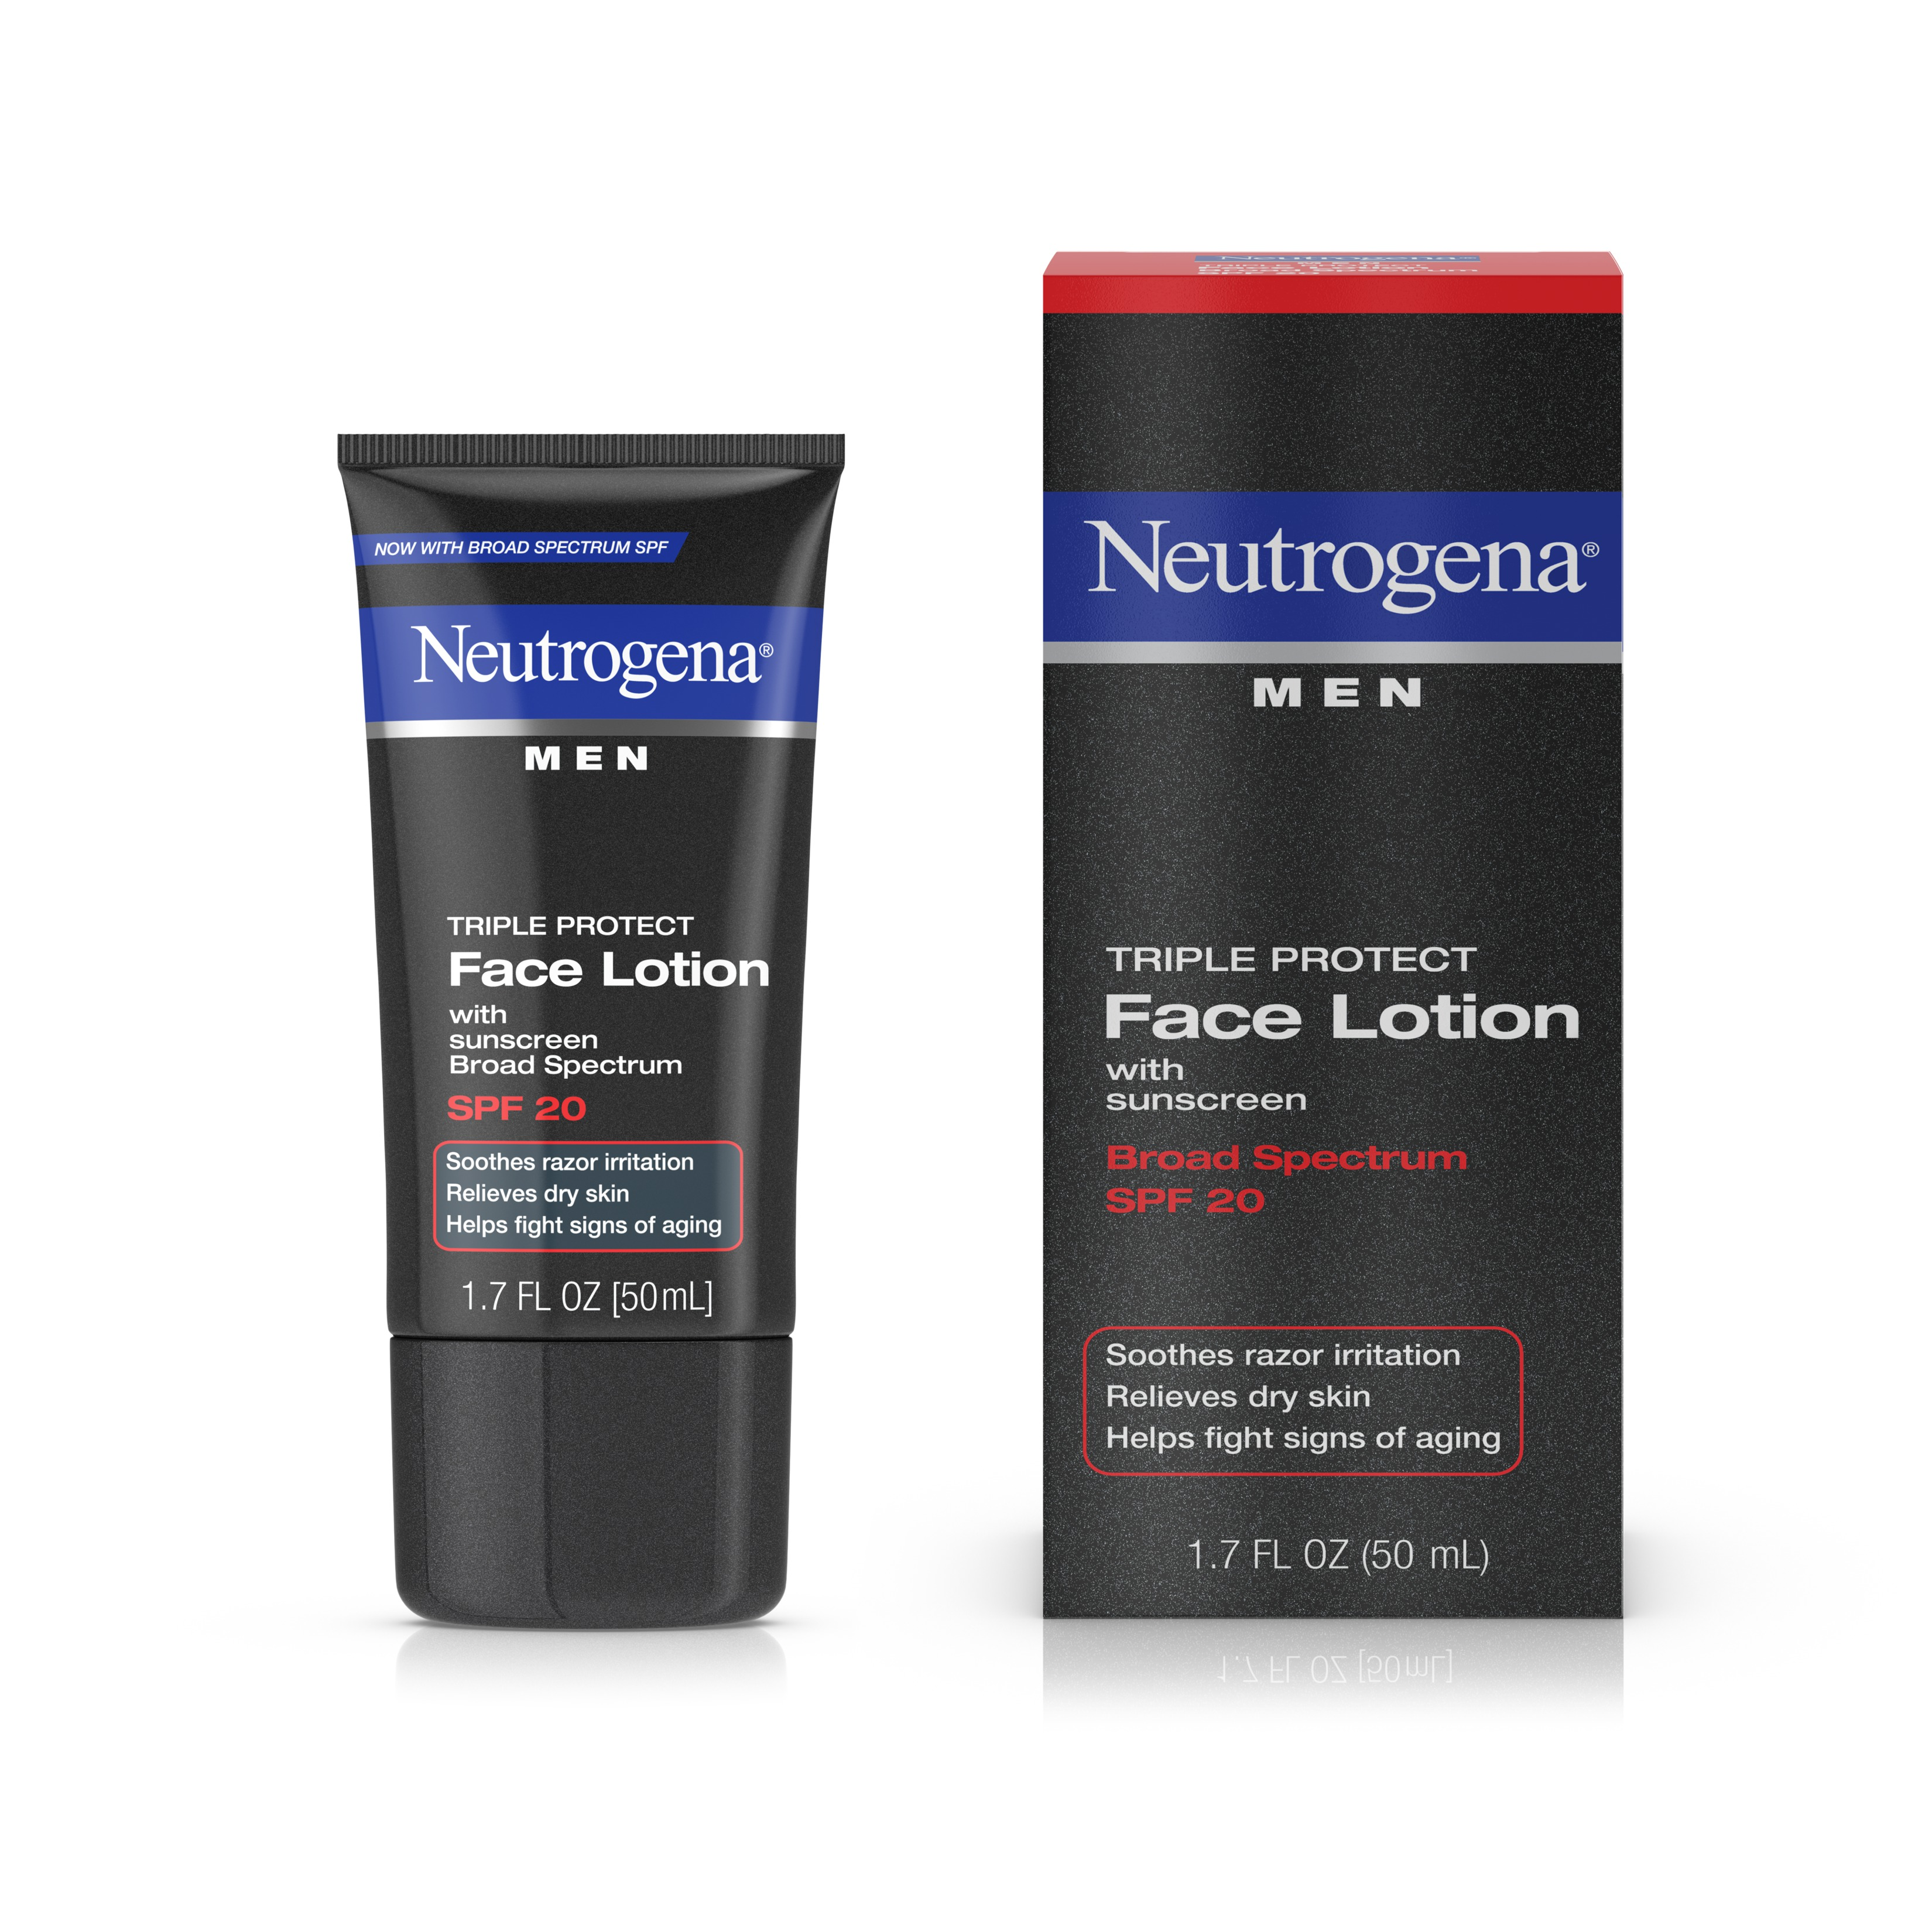 Neutrogena Triple Protect Men's Face Lotion, SPF 20, 1.7 fl. oz